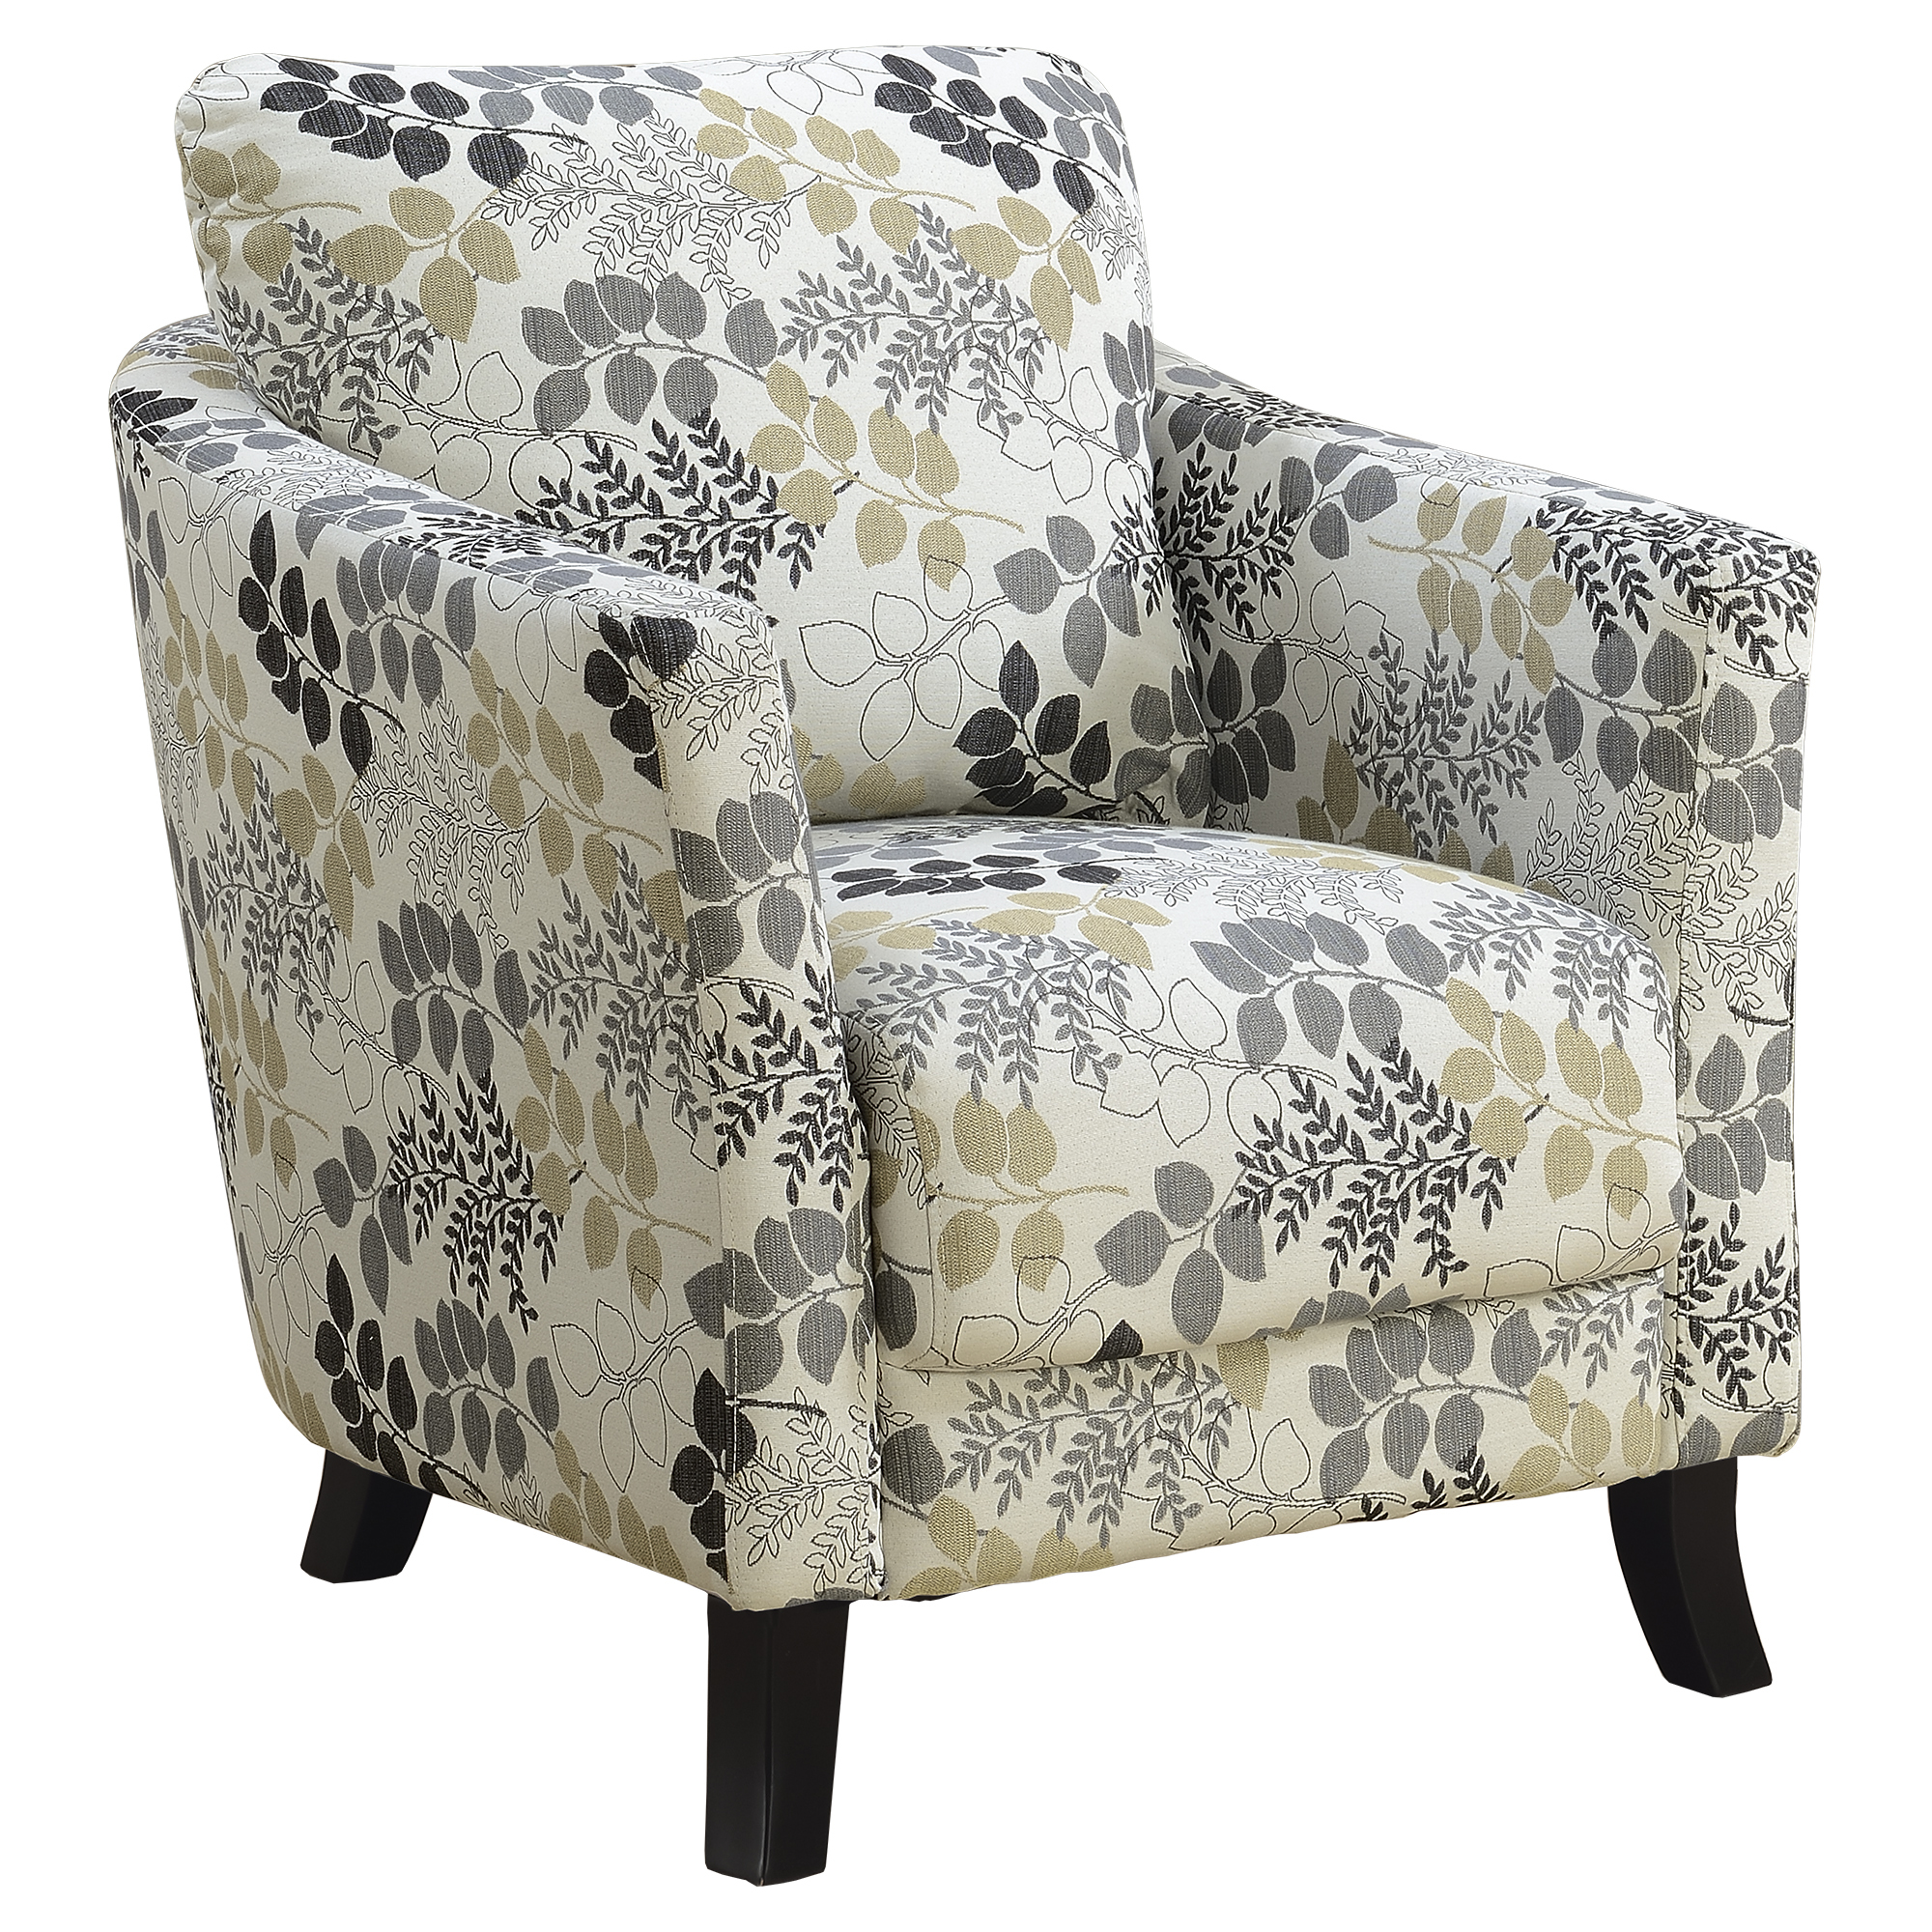 Picture of: Accent Chair Earth Tone Floral Fabric Victoria Rose Decor